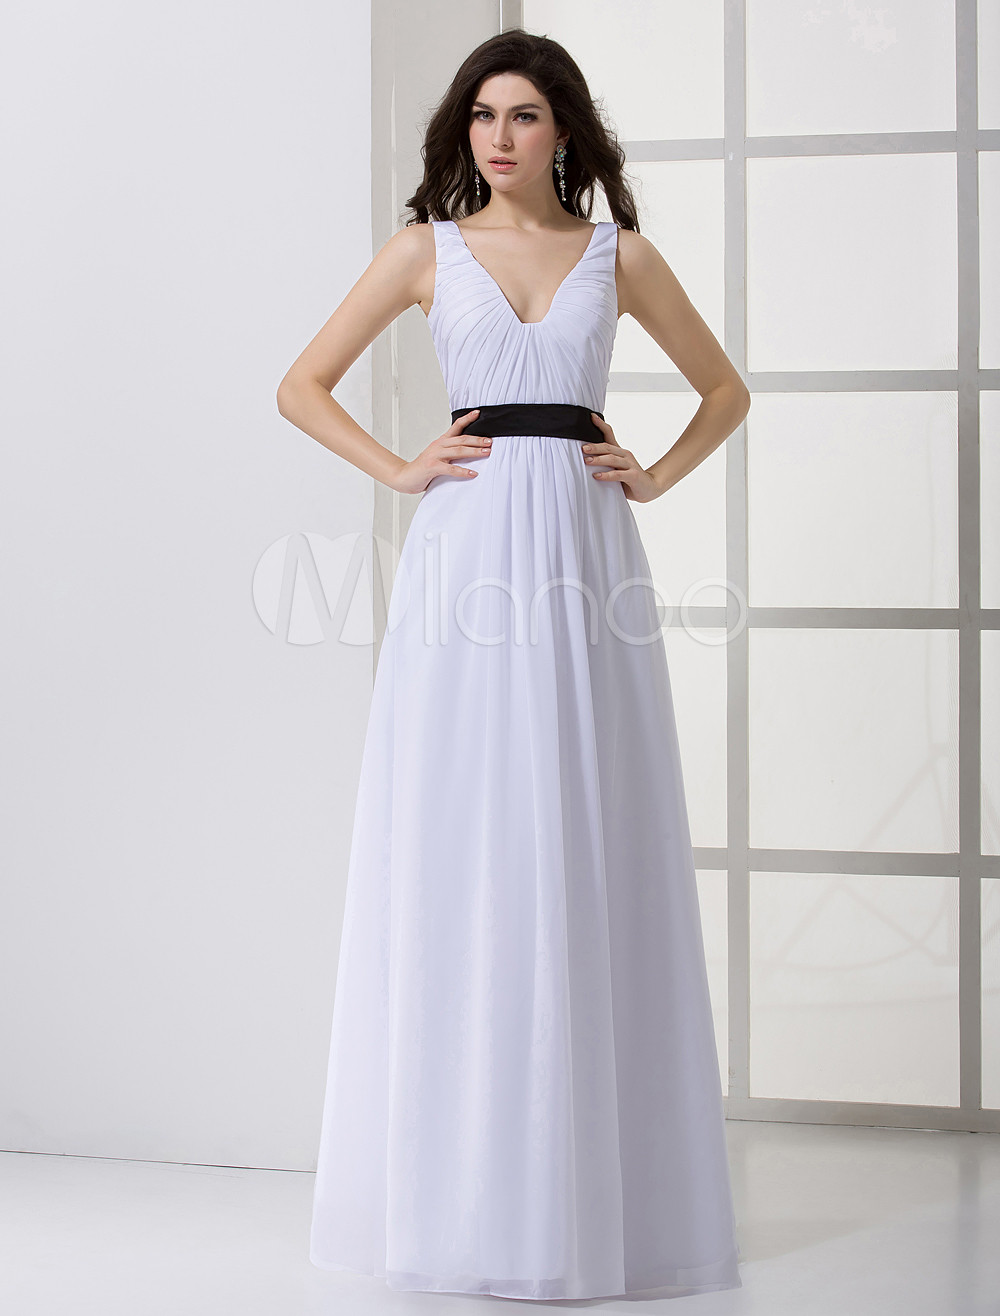 255f2e0d241 Classic White Chiffon Sash V-Neck Women s Evening Dress - Milanoo.com